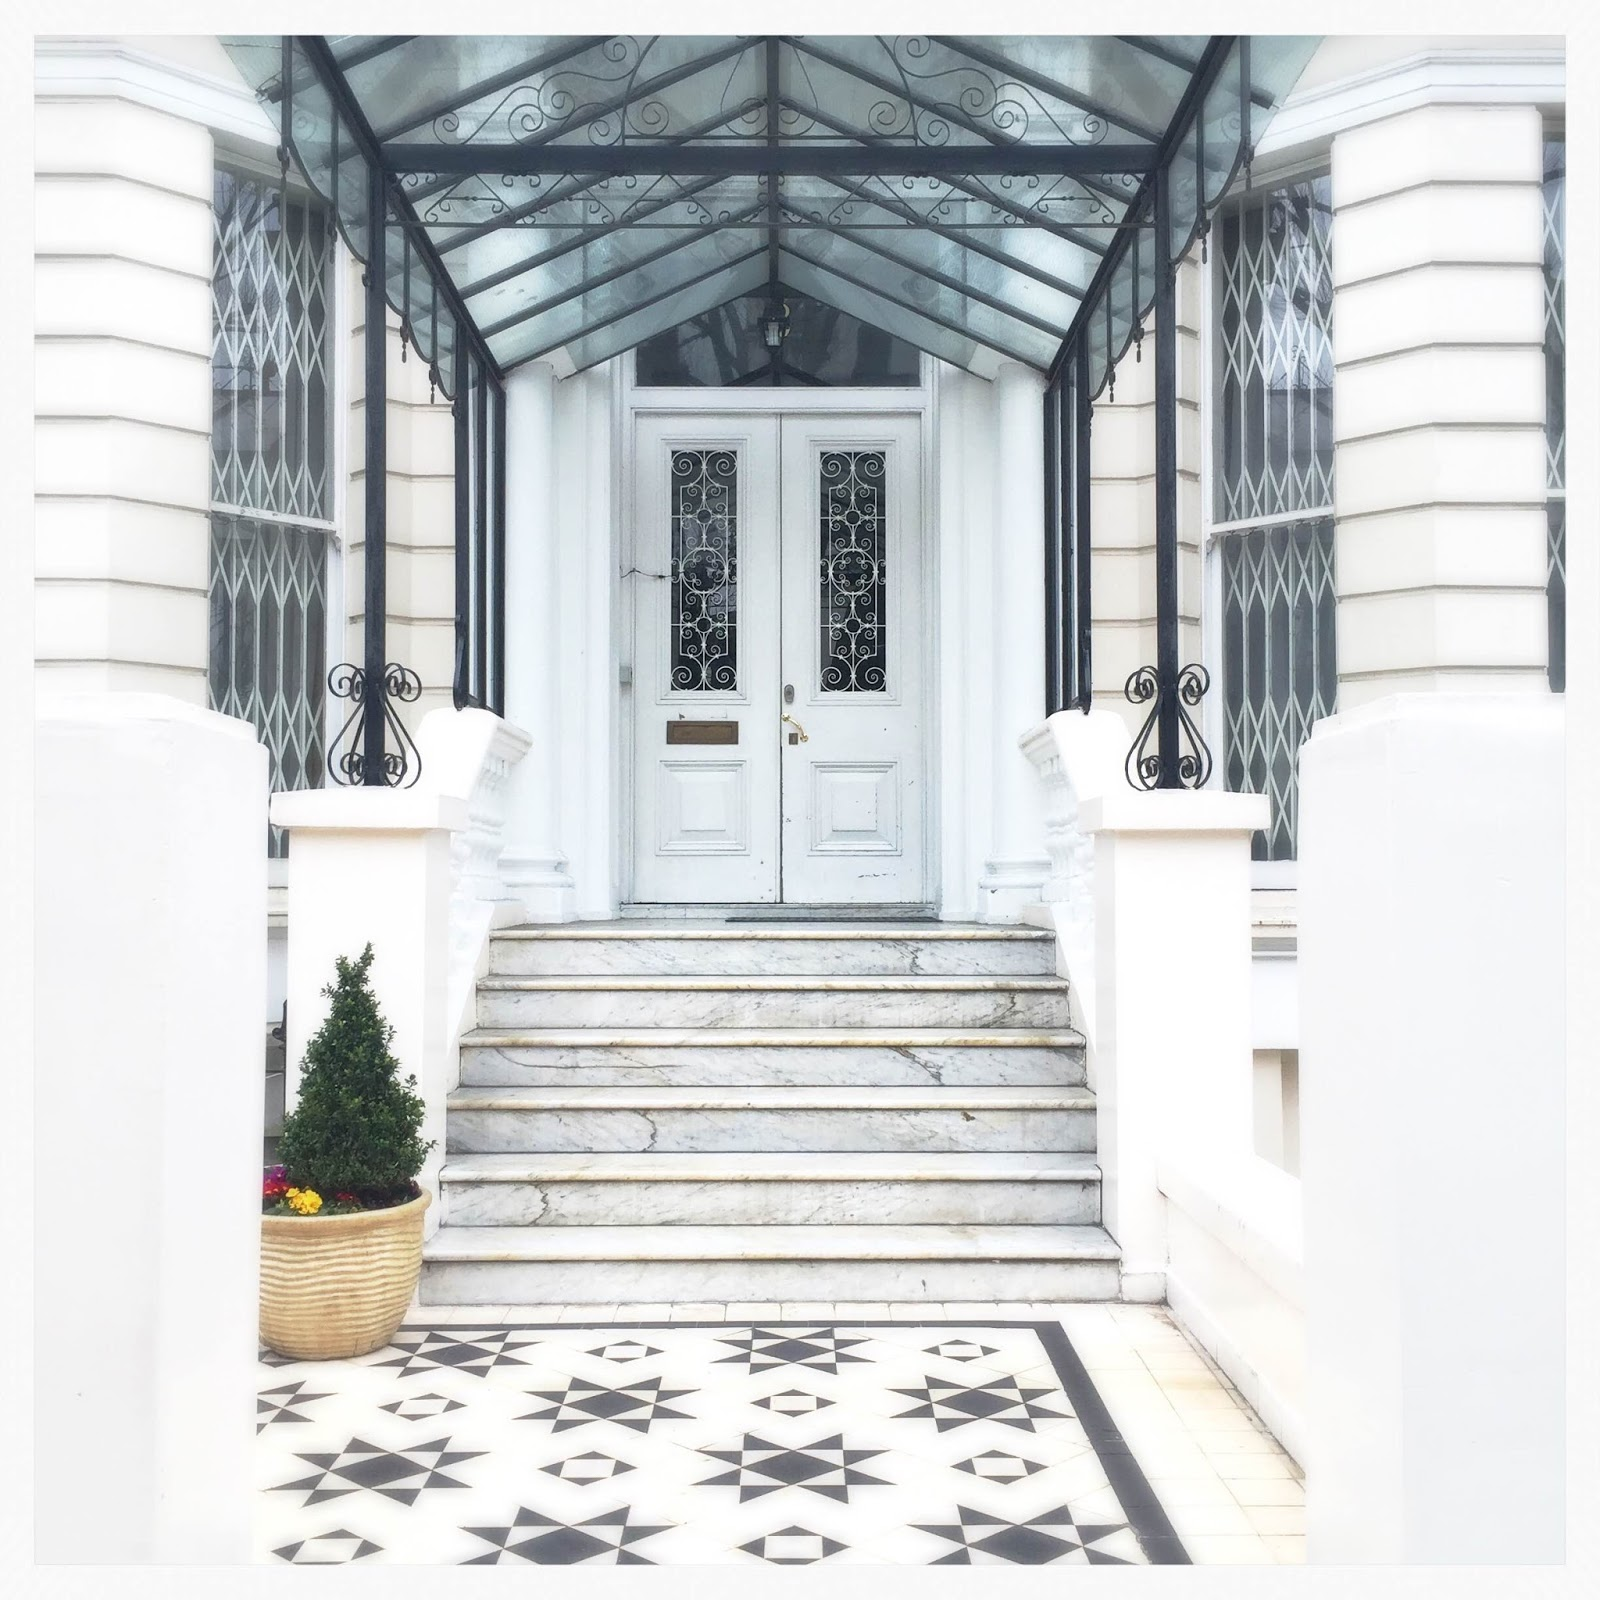 House entrance in Kensington London blogger photos